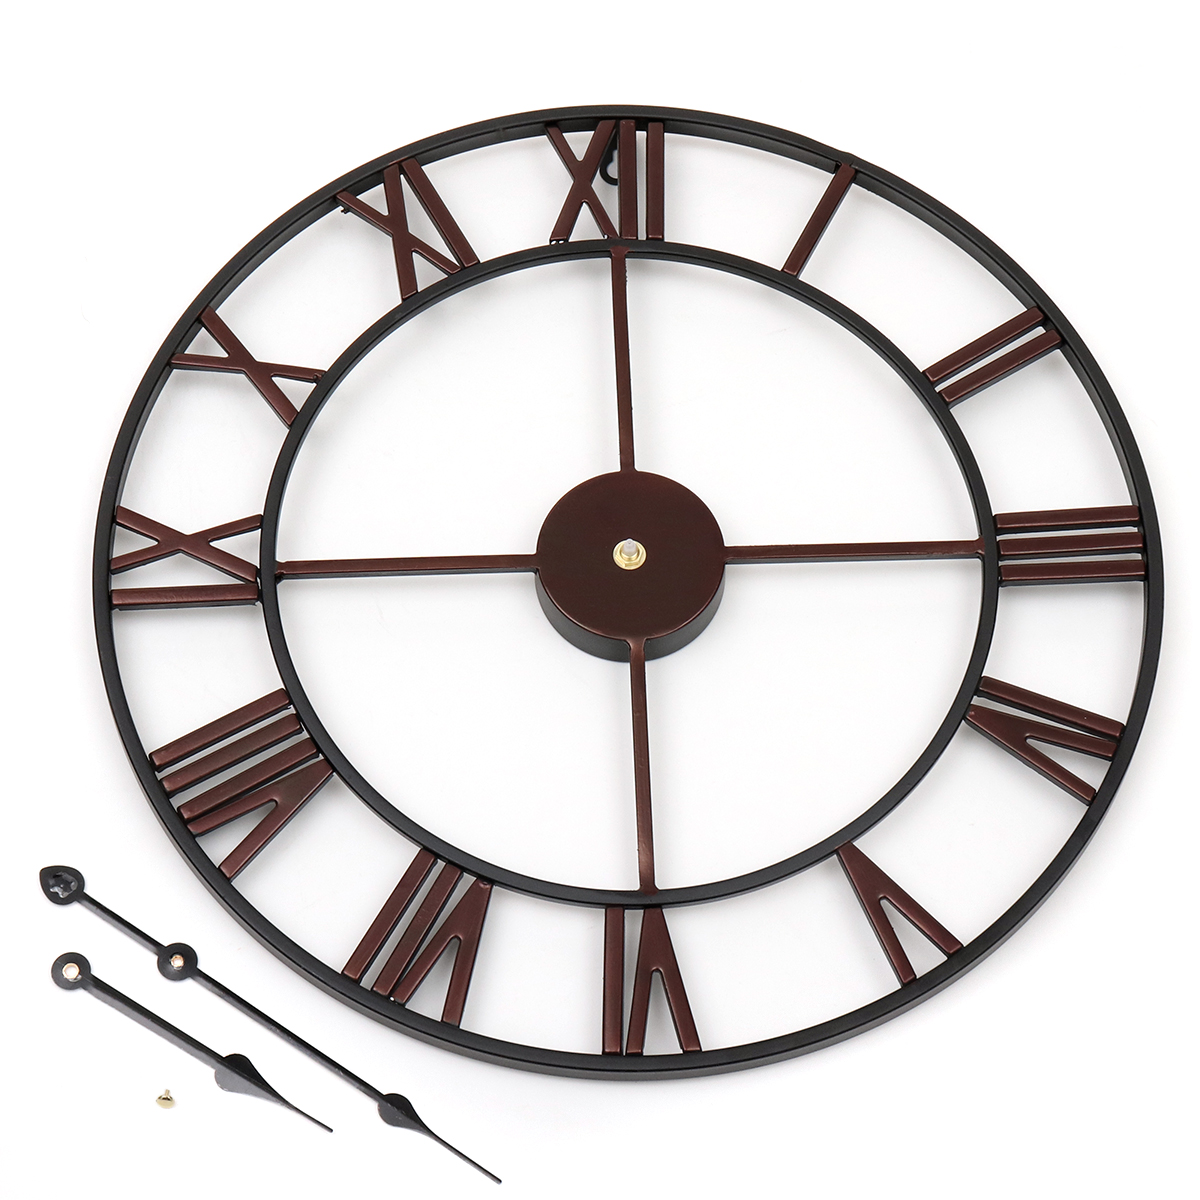 43a2f395de00 45cm Large Wall Clock Big Roman Numerals Giant Open Face Metal For ...